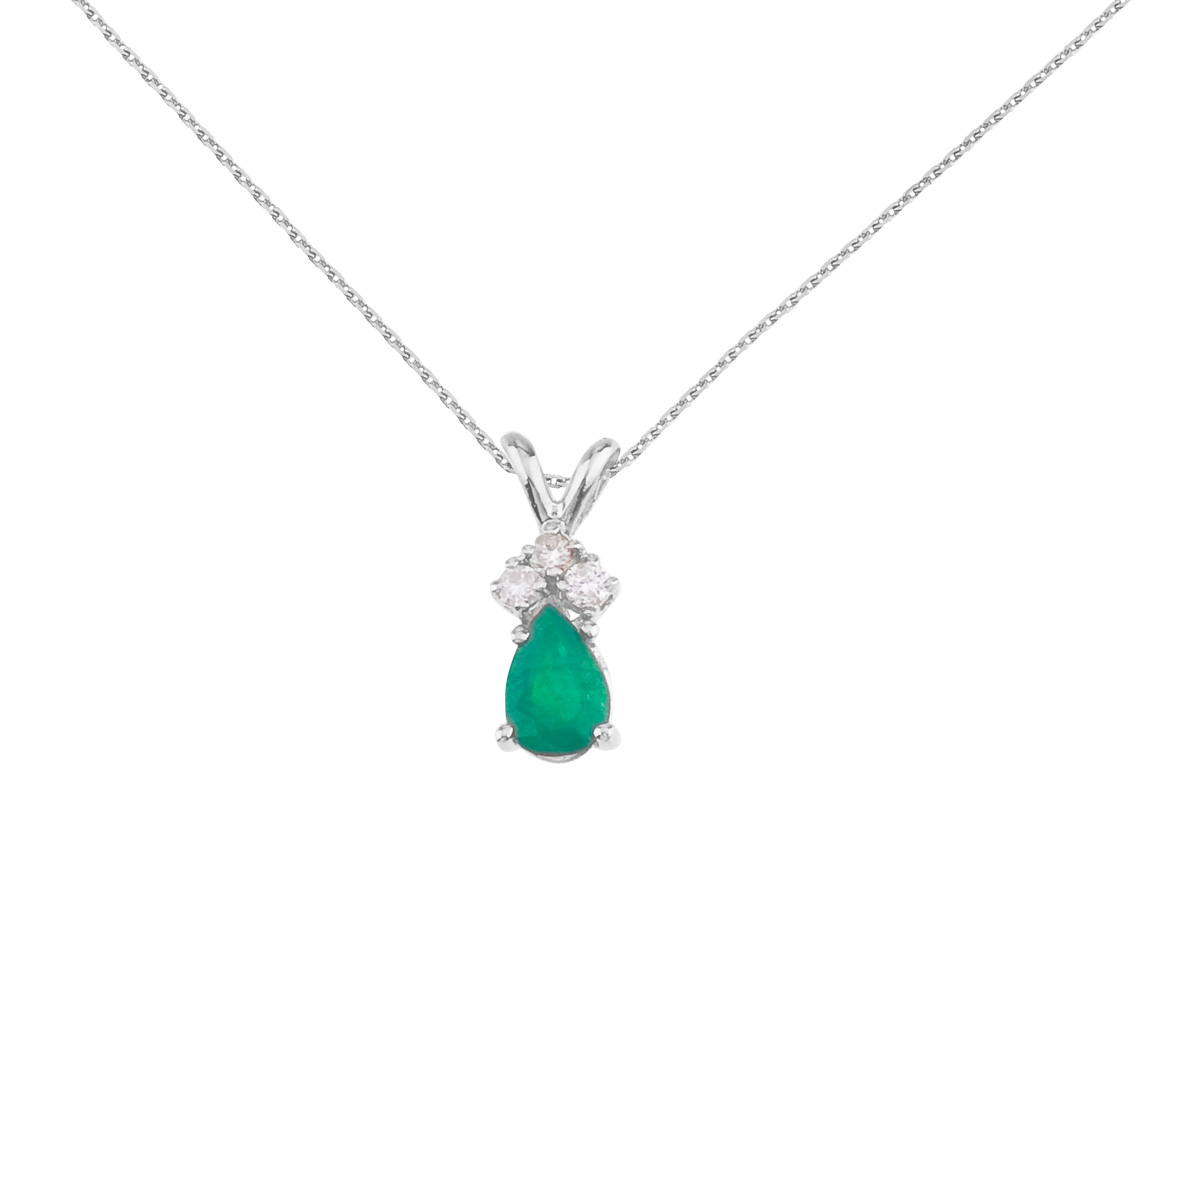 Direct 14K White Gold Pear Shaped Emerald Pendant with Di...